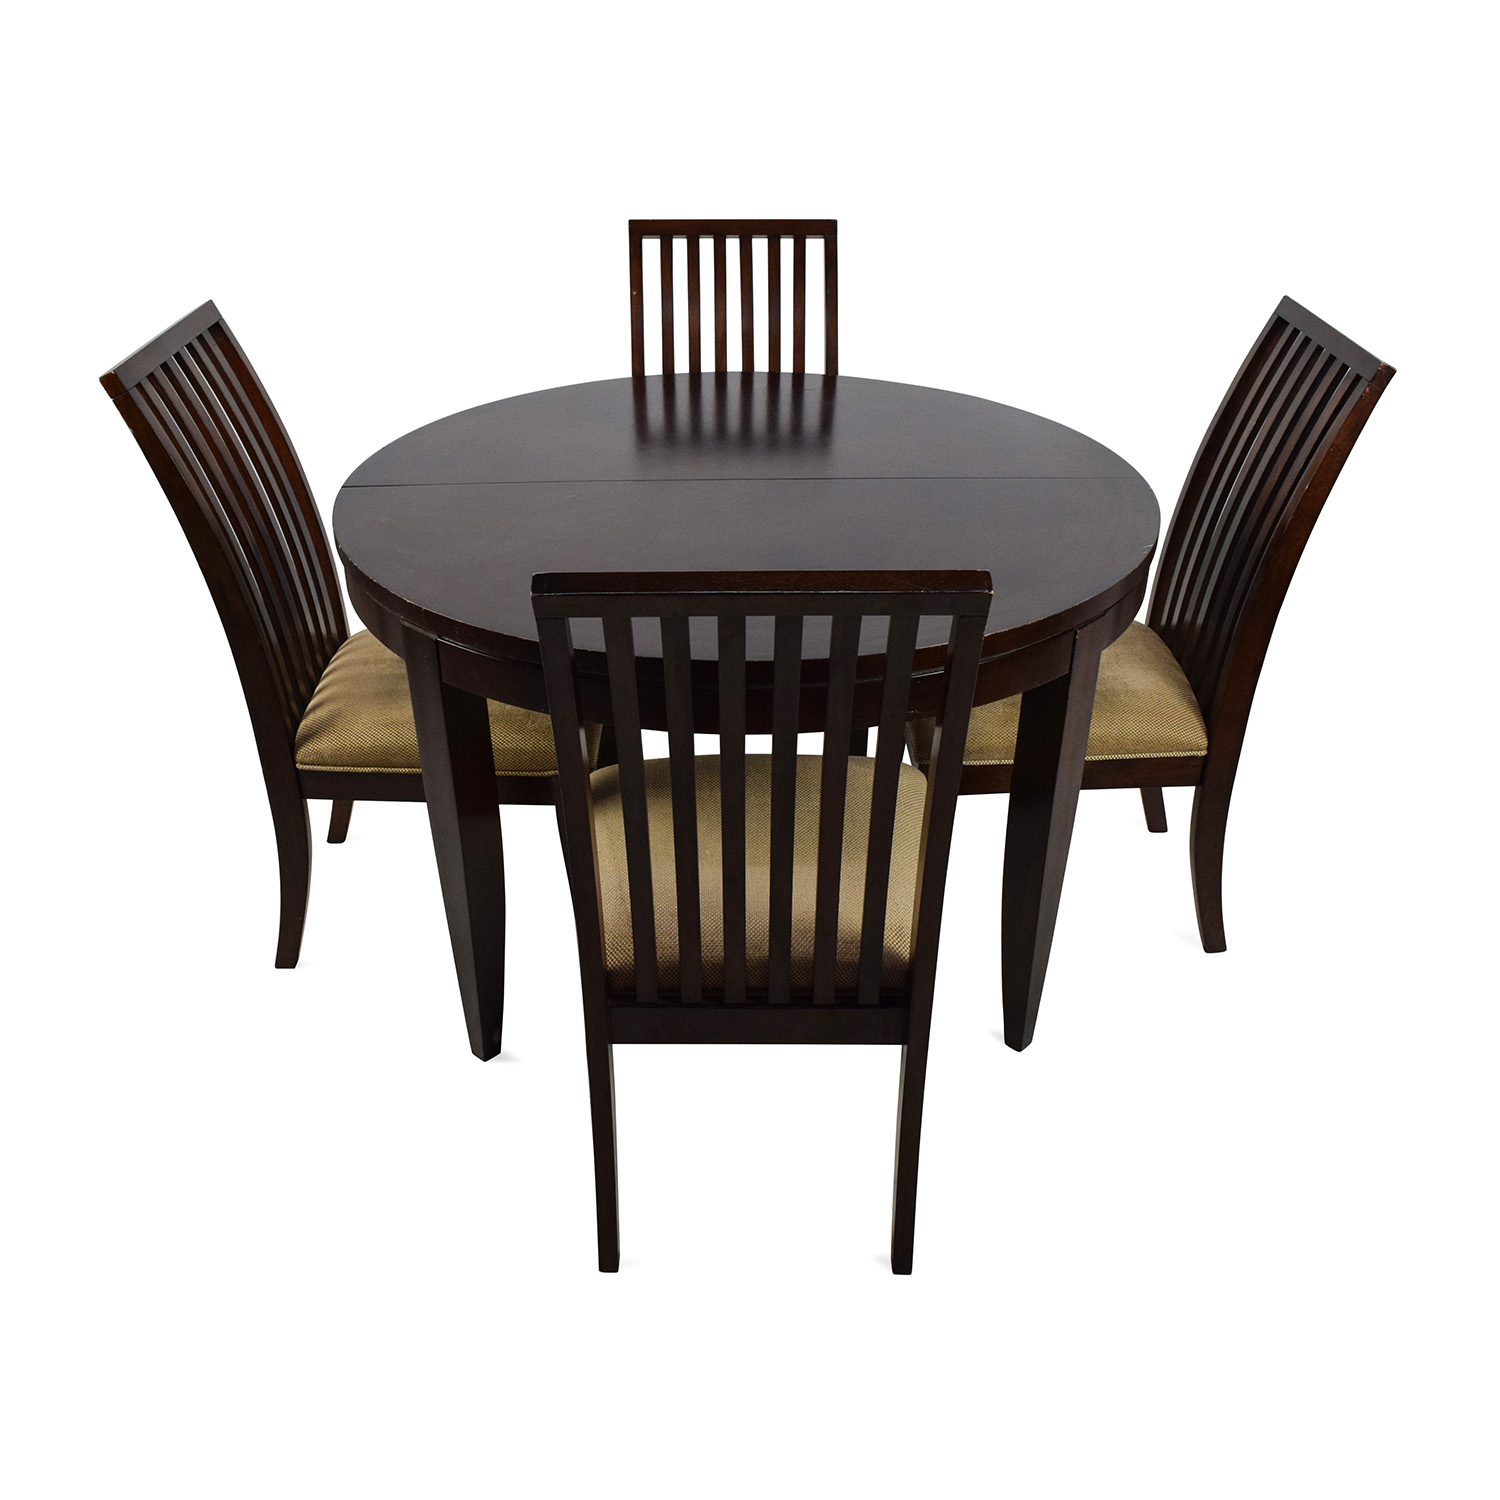 75 off macy 39 s macy 39 s bradford extendable dining table with 4 chairs tables. Black Bedroom Furniture Sets. Home Design Ideas